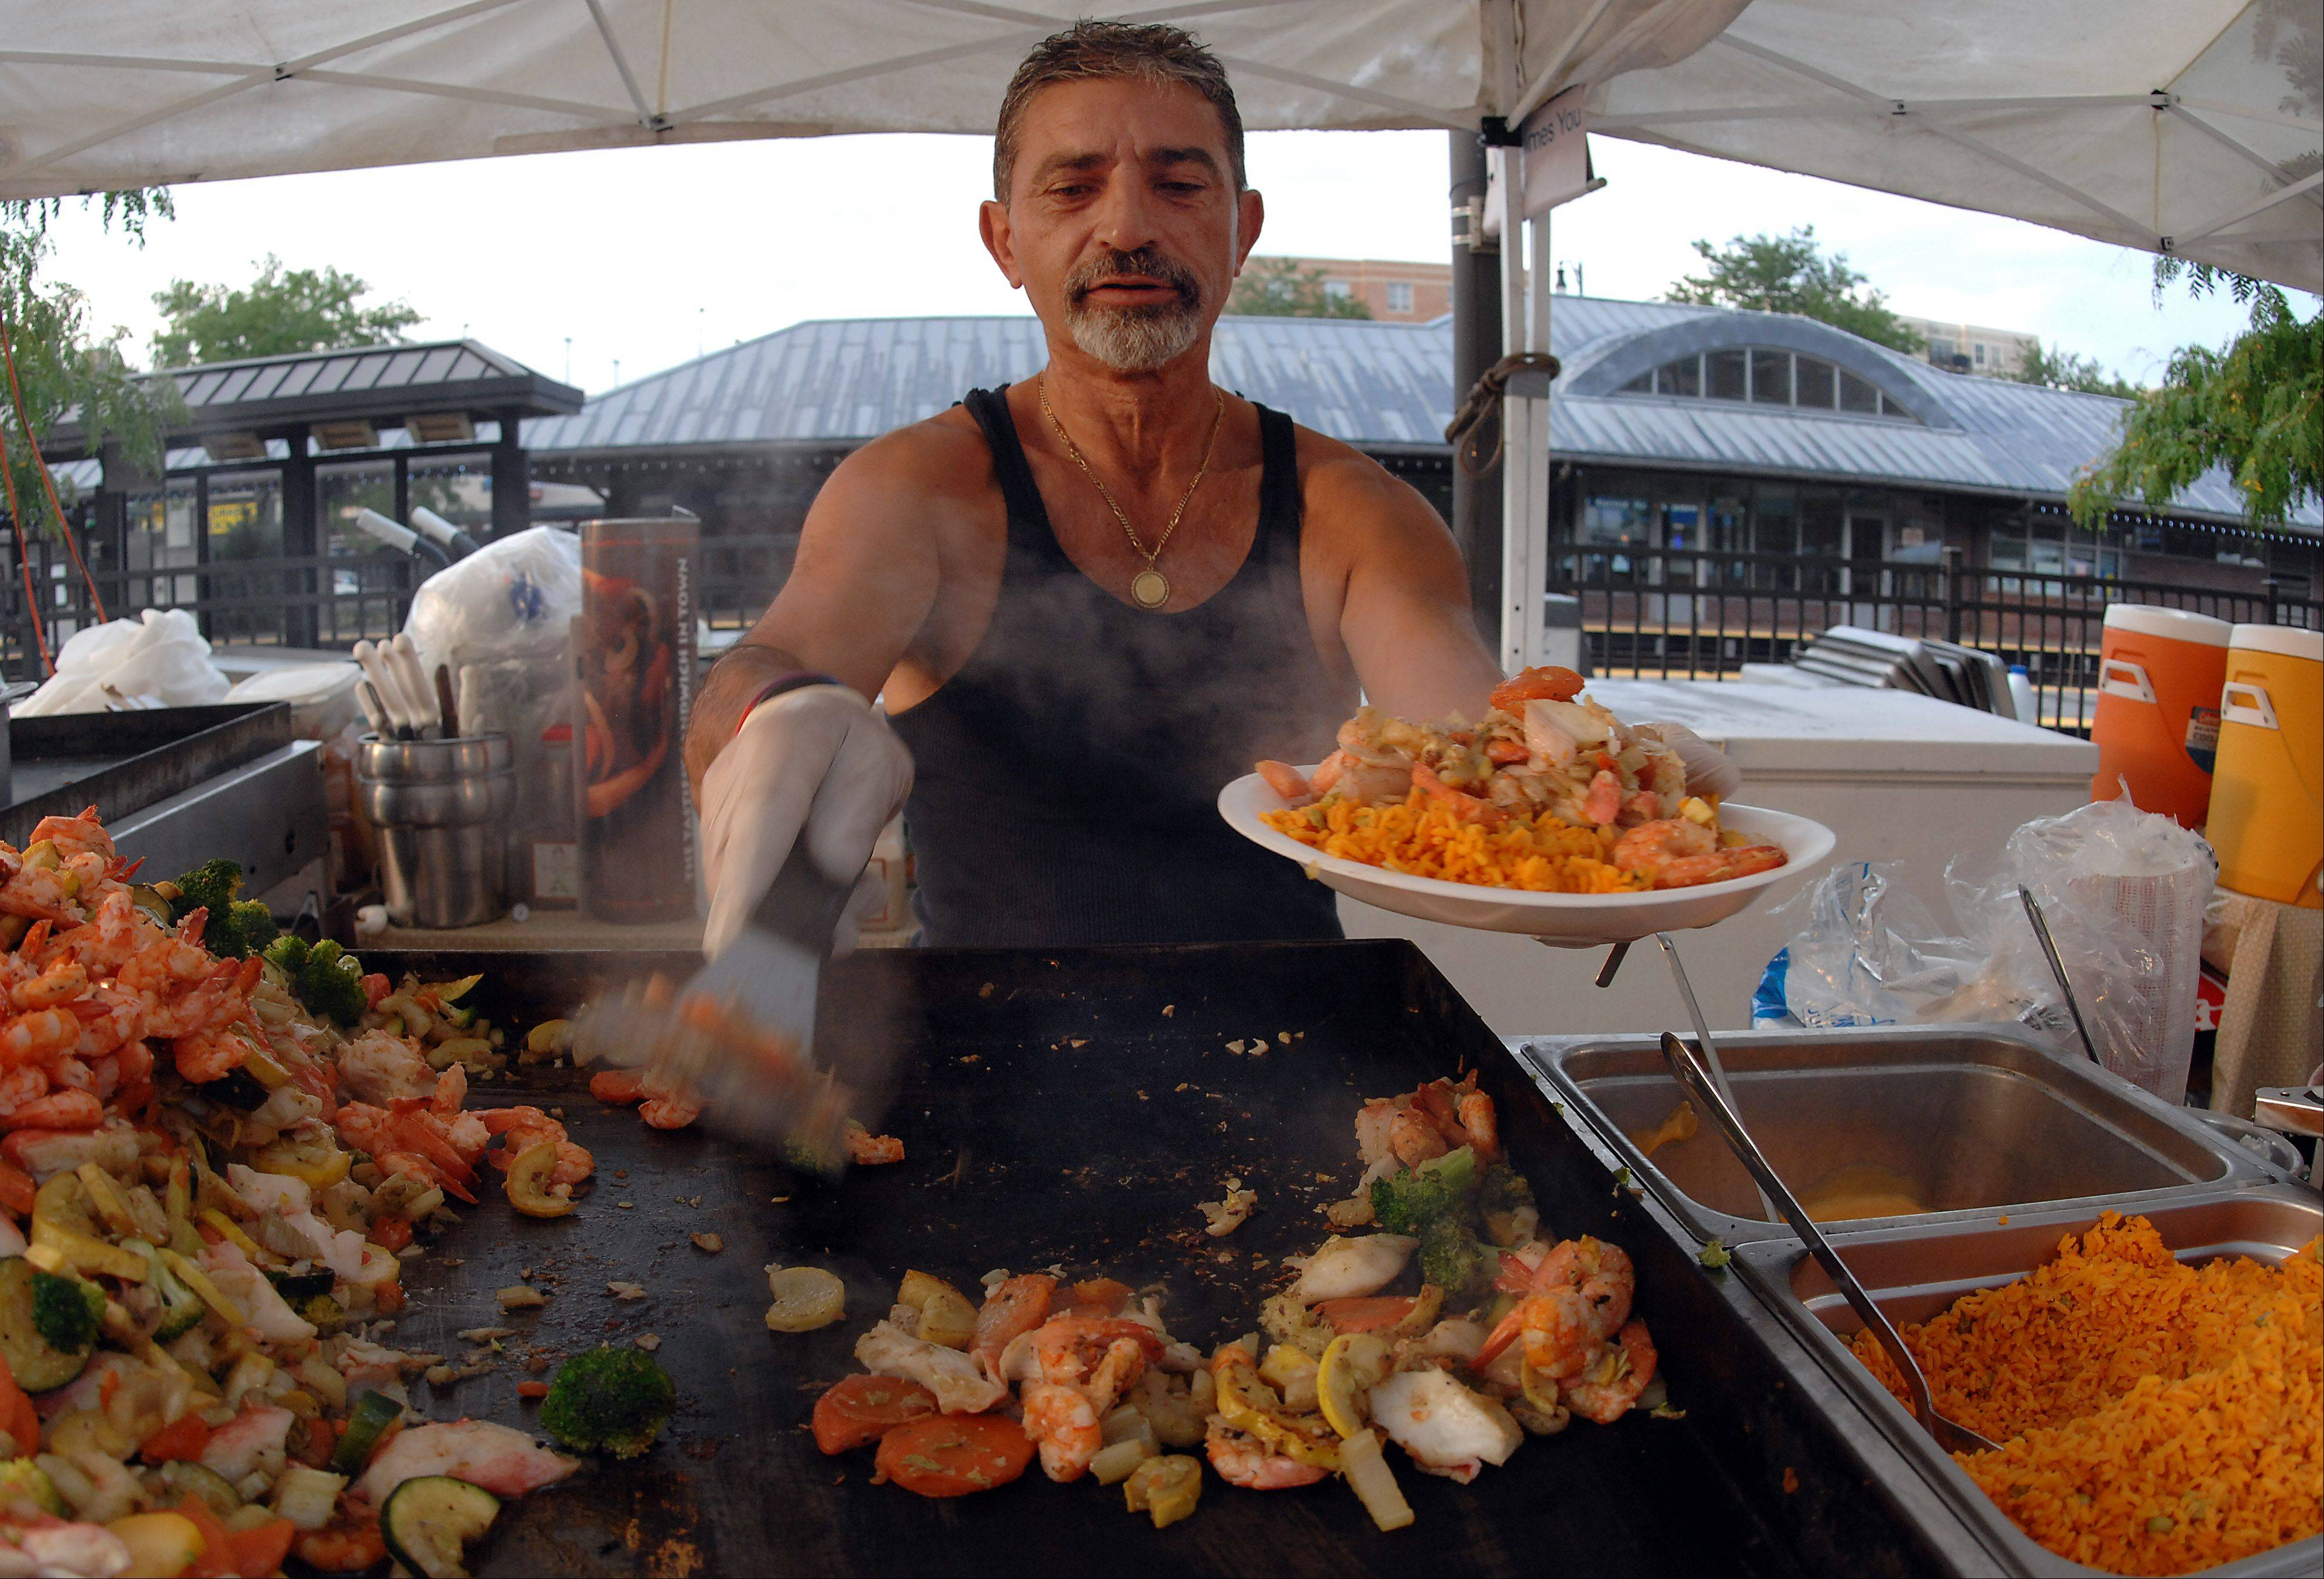 Telly Likoubis serves up his famous seafood combo platter to hungry patrons at last year's Des Plaines Summer Fling Festival. The festival will go on this year, though aldermen briefly discussed nixing it.